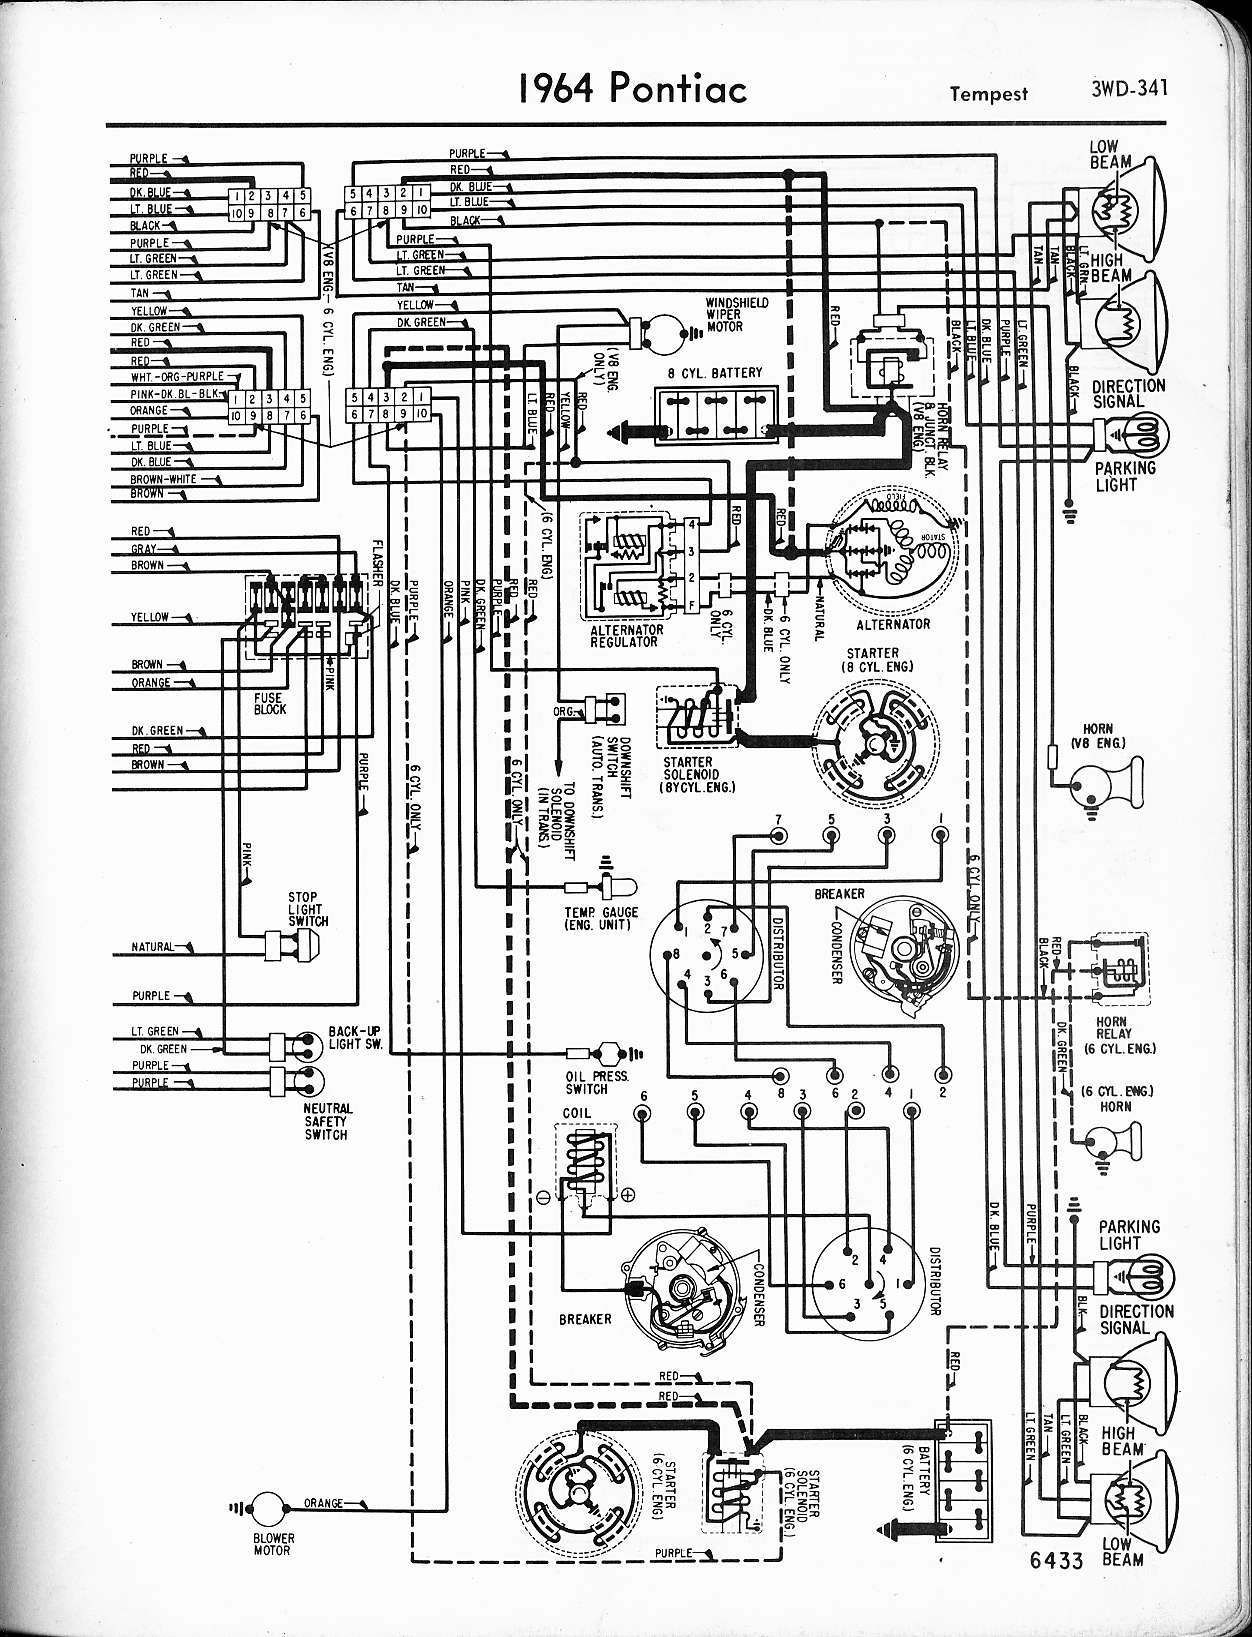 1965 gto heater wiring diagram wiring data rh retrotrek co 1966 pontiac lemans steering column wiring